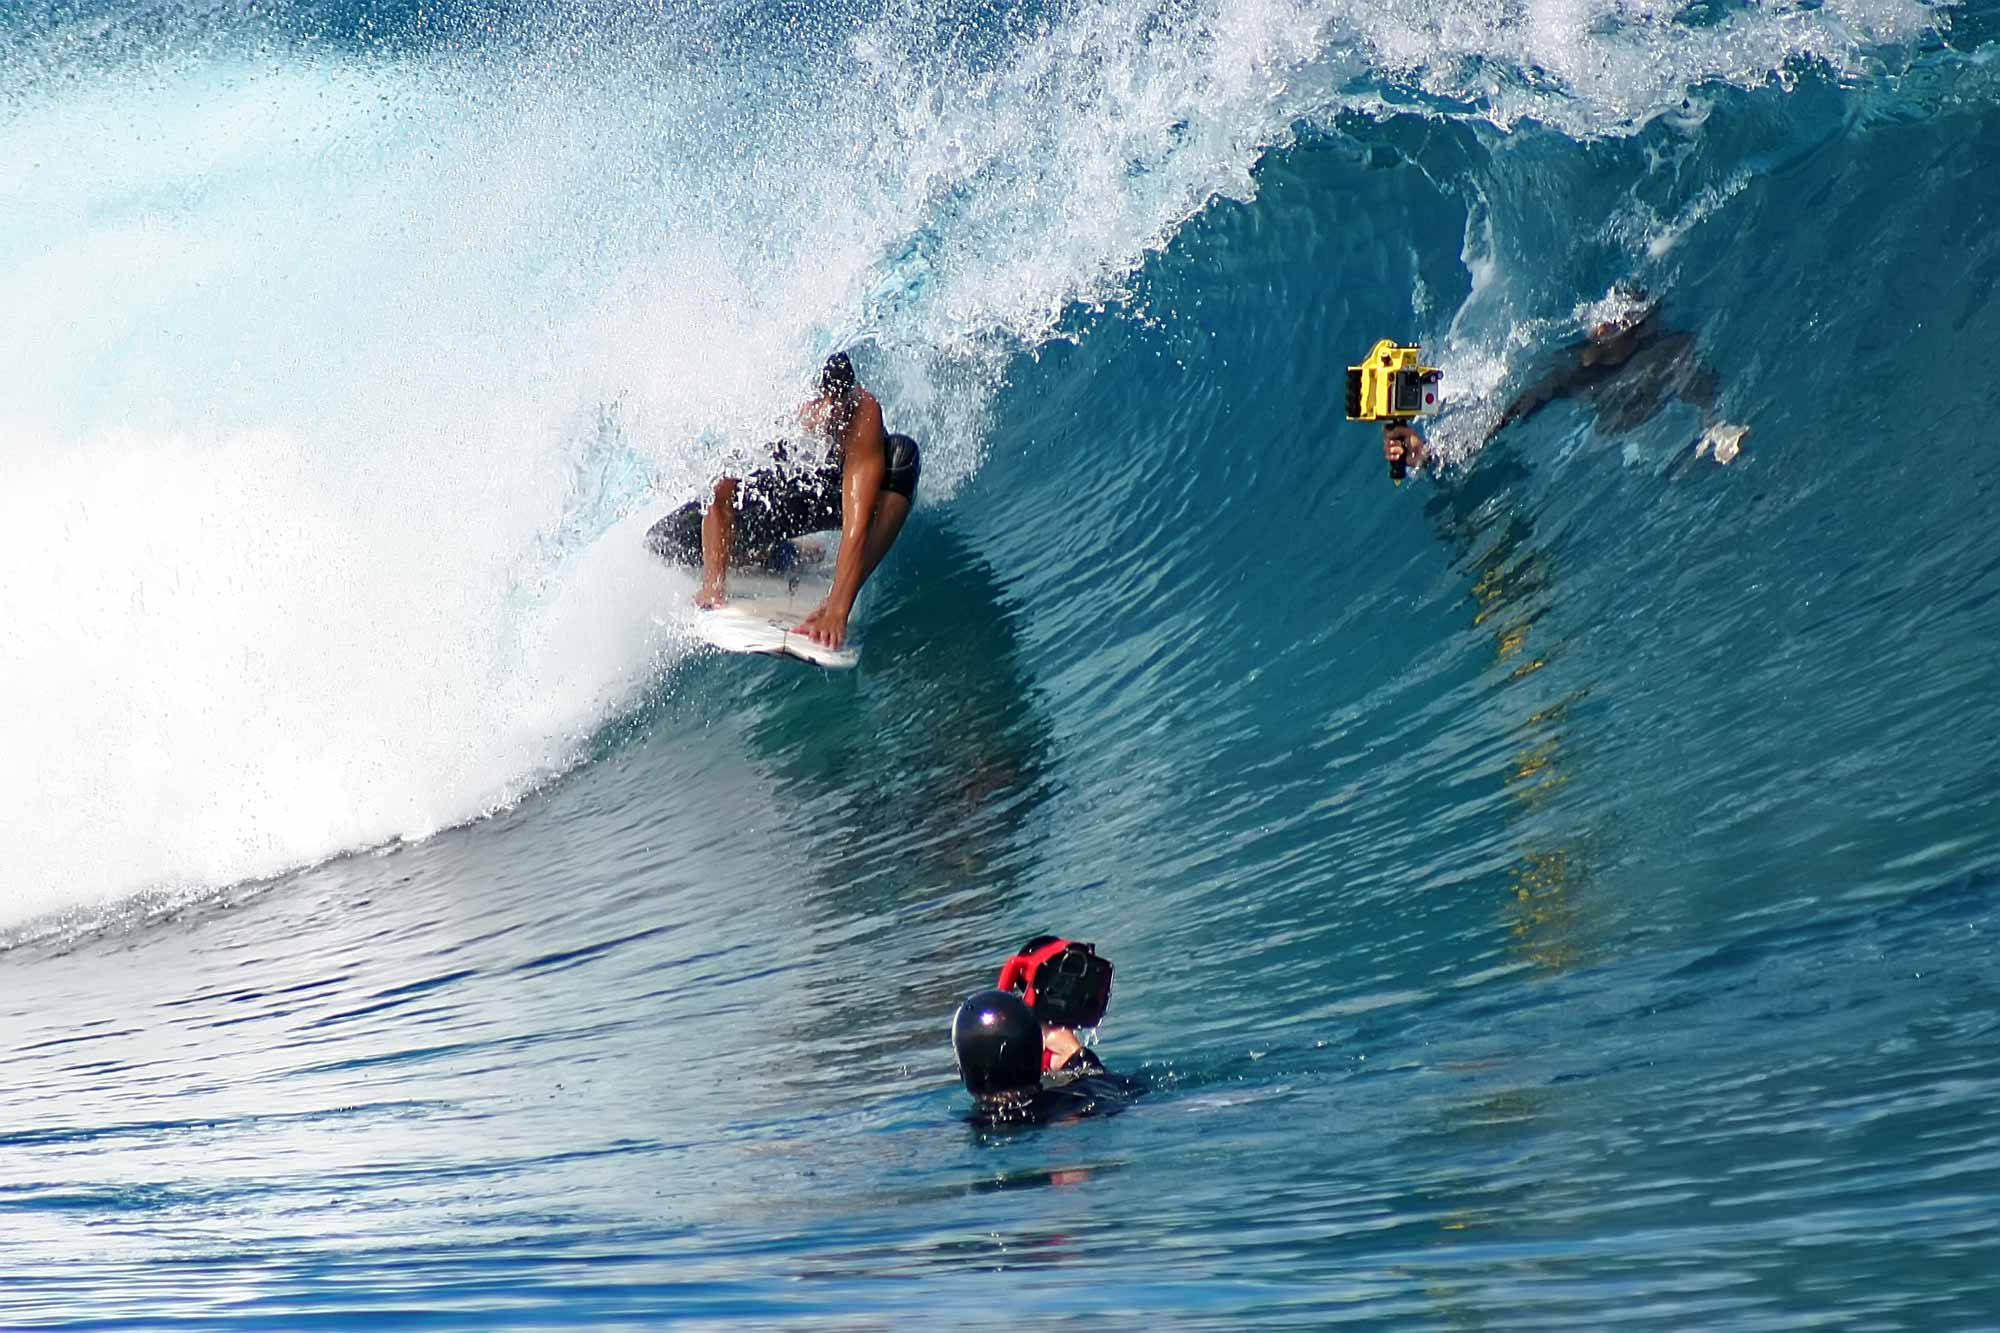 surfer-camera-man-teahupoo-tahiti-french-polynesia